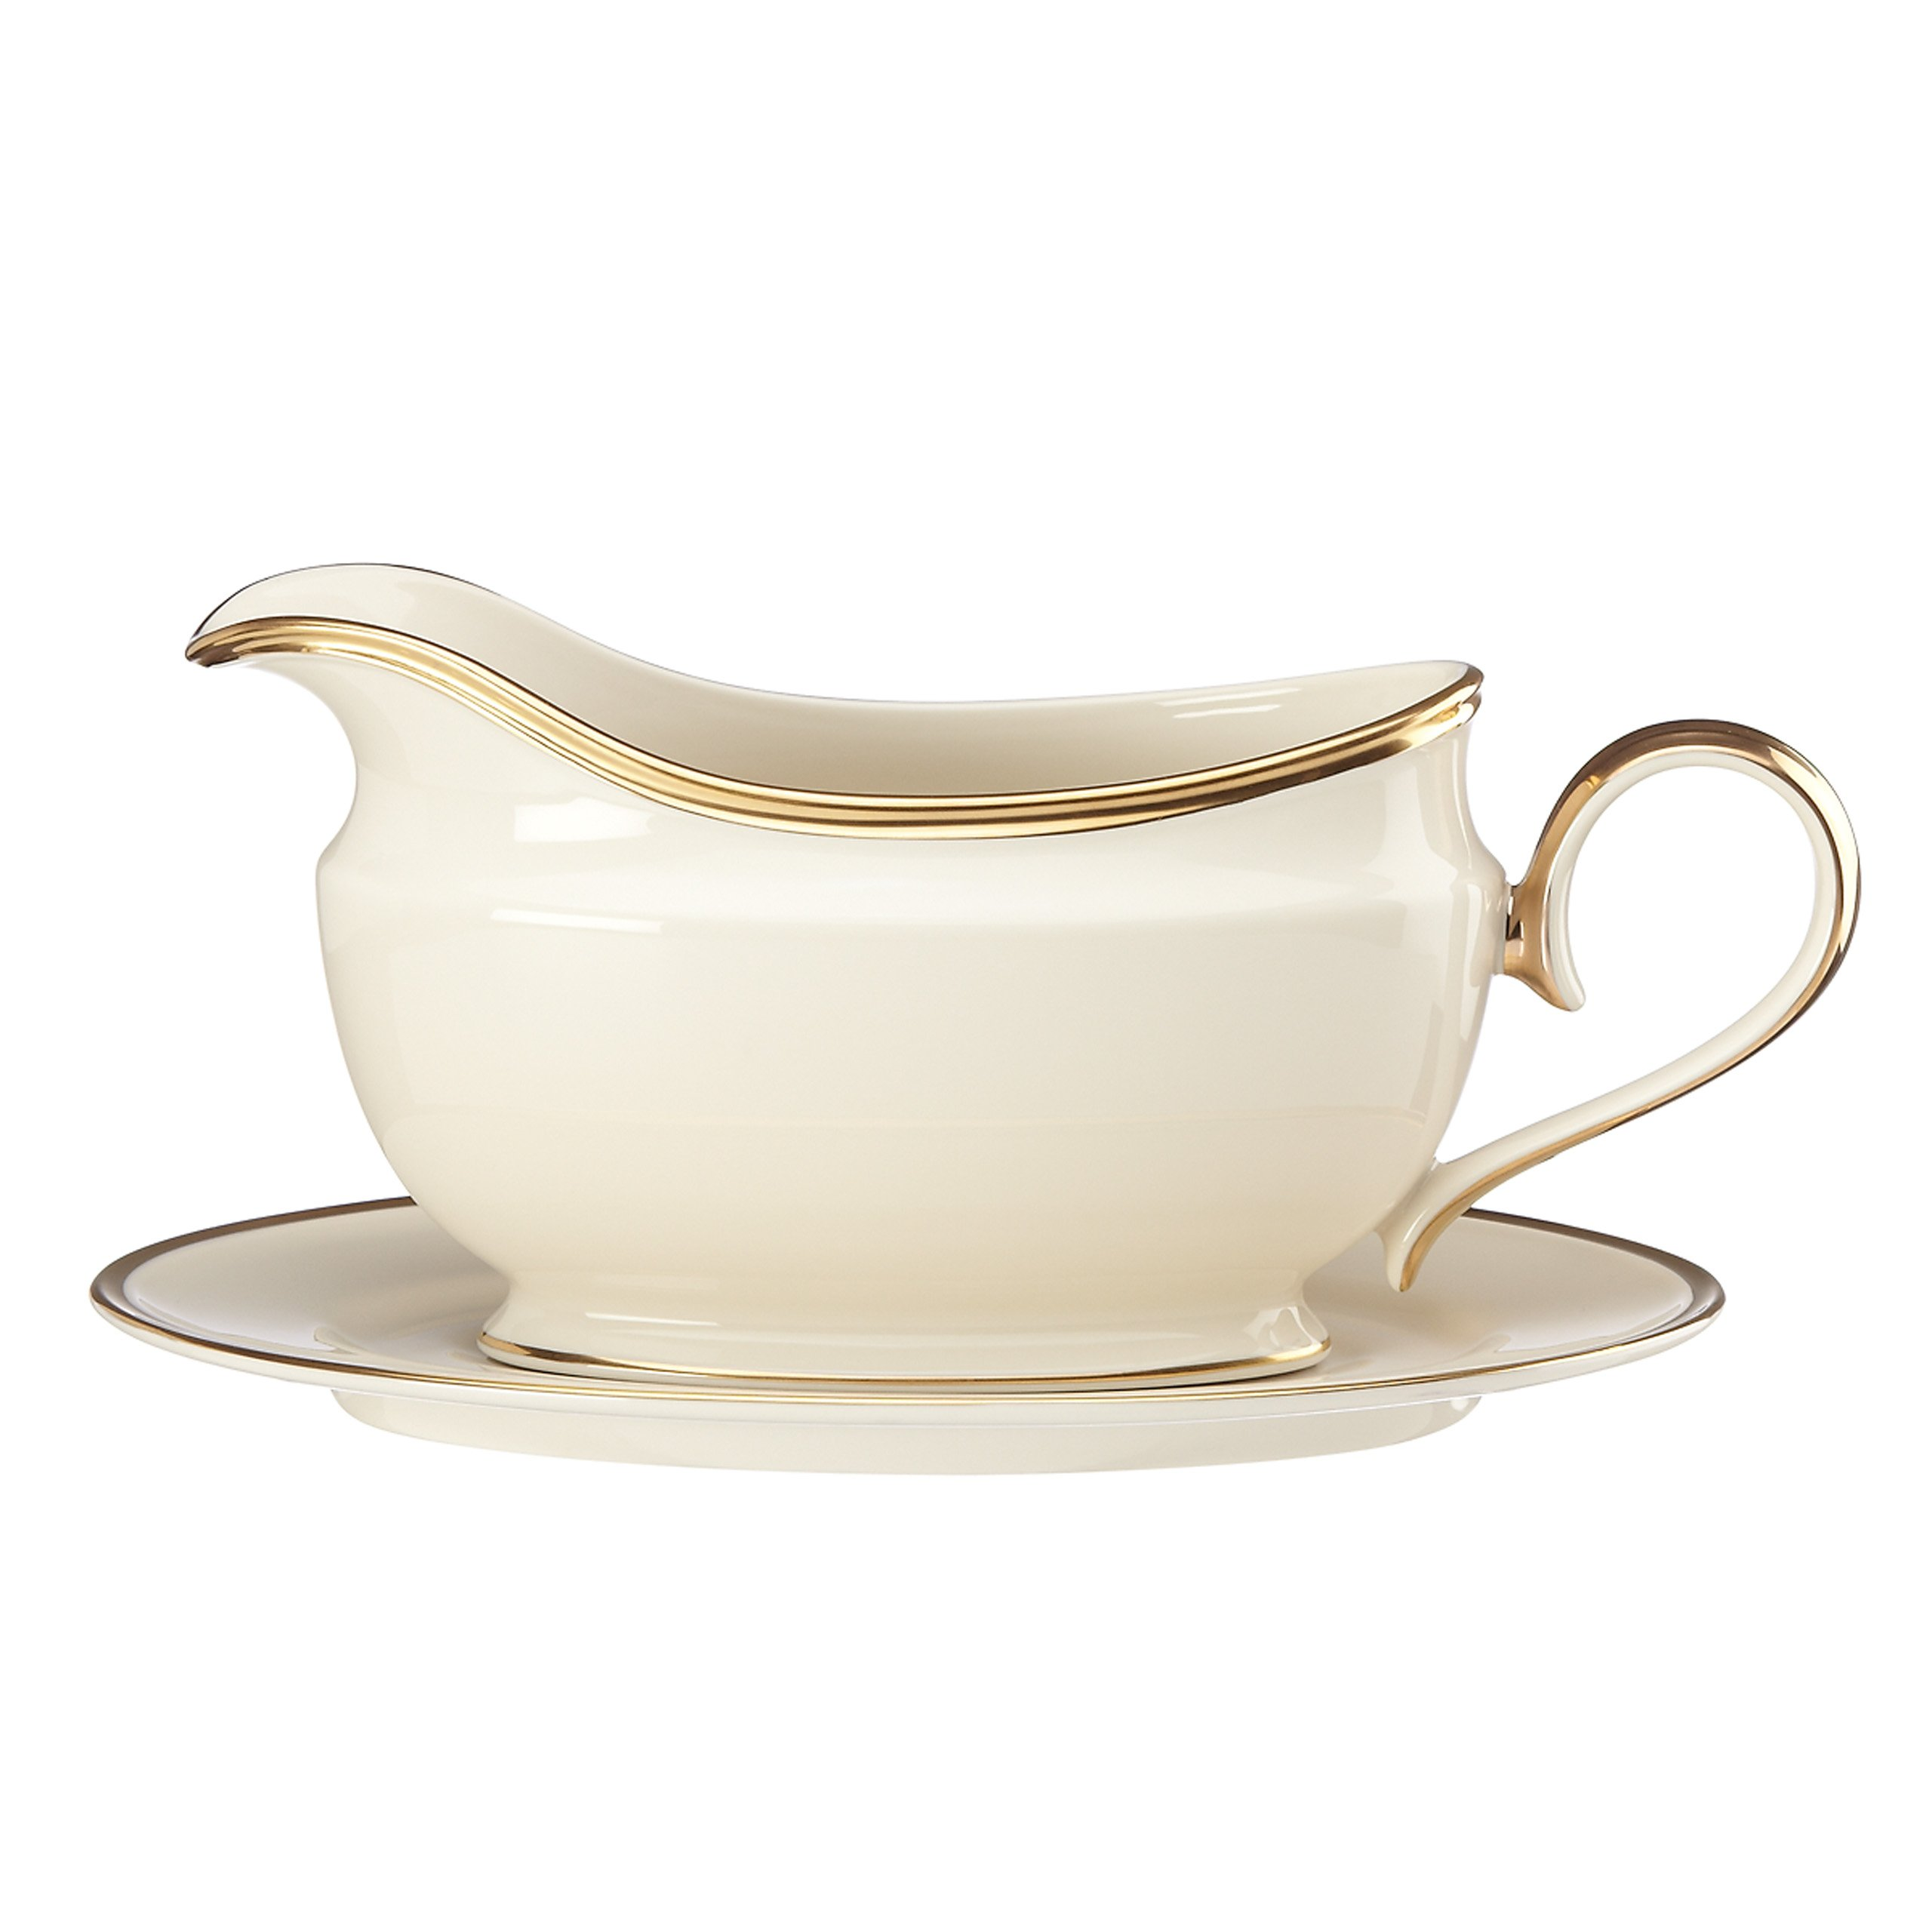 Lenox Eternal Sauce Boat and Stand, Ivory